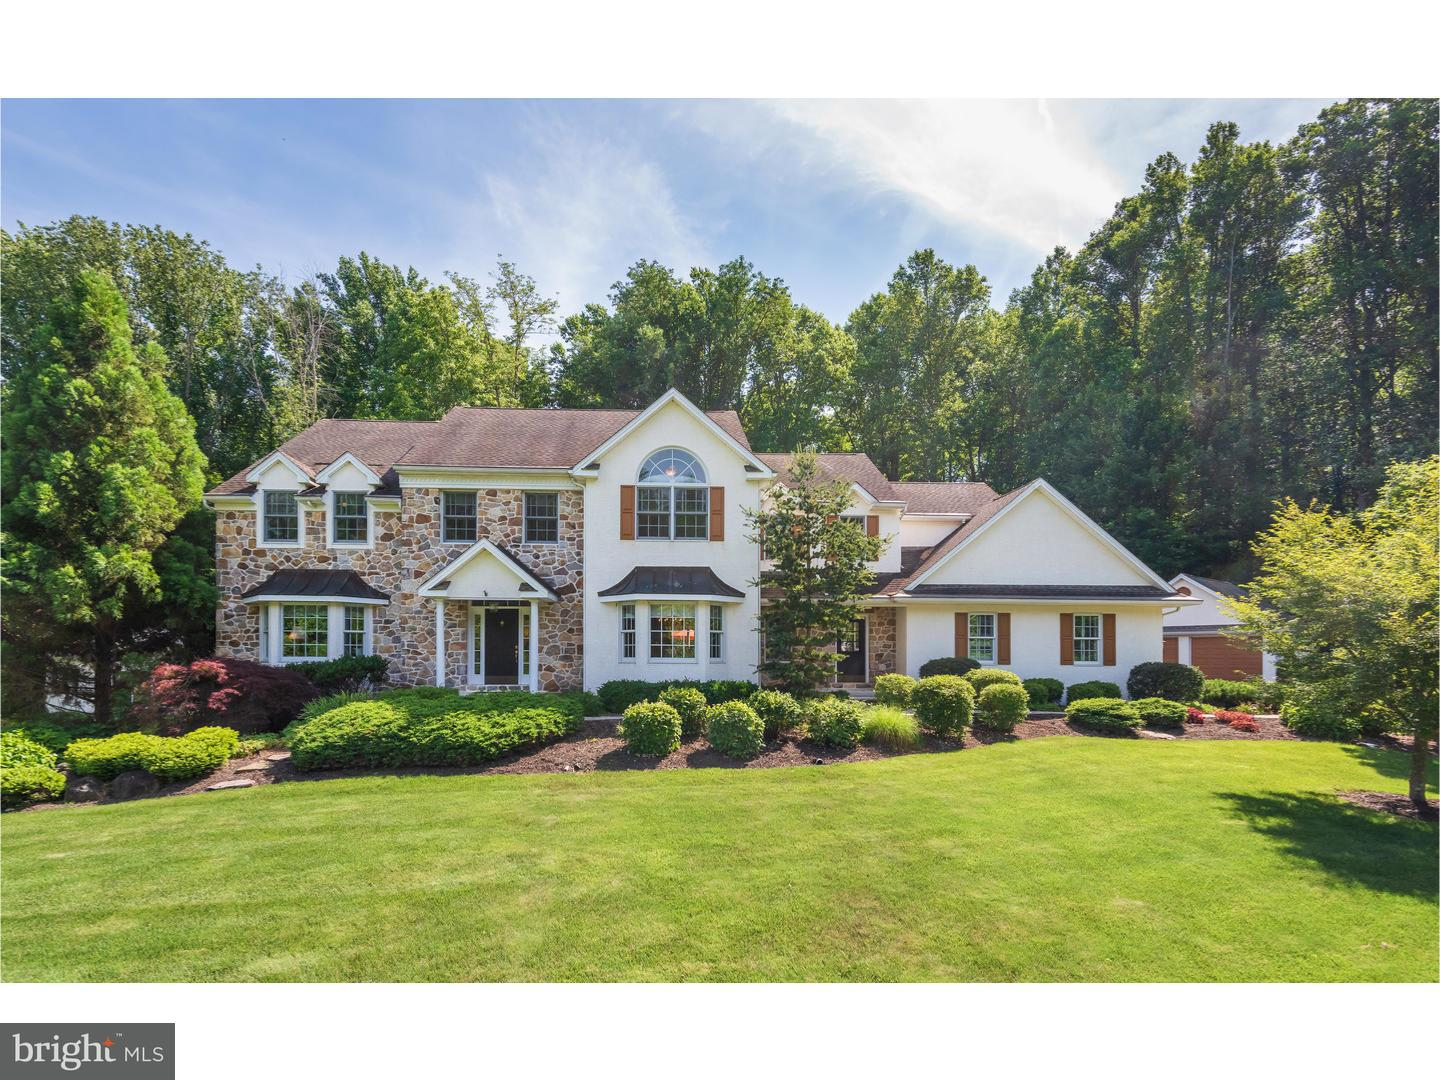 Single Family Home for Sale at 44 DELANEY Drive Downingtown, Pennsylvania 19335 United States